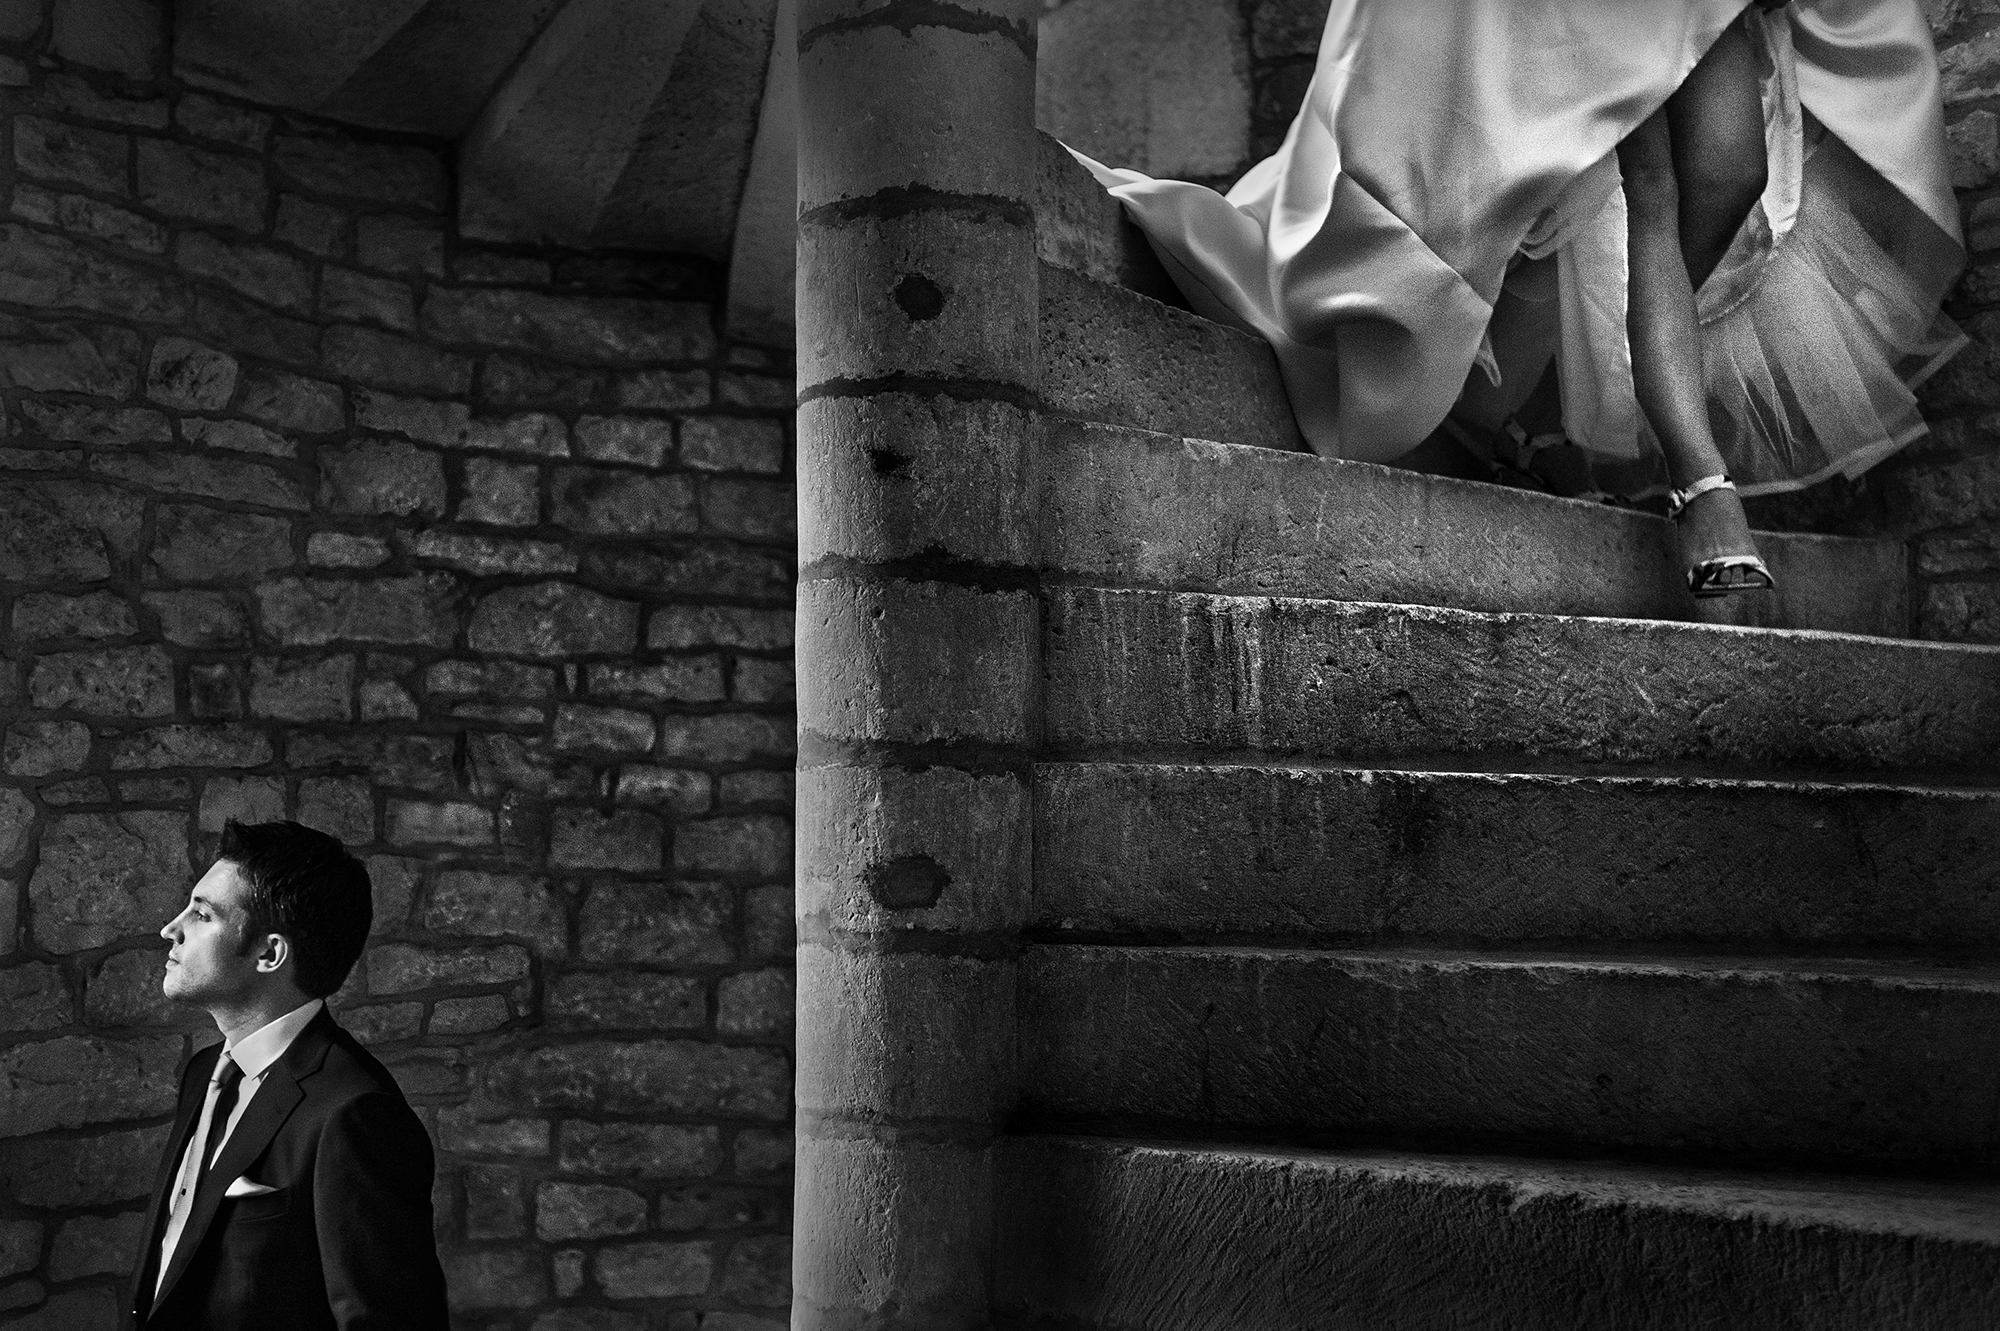 black-and-white-bride-descending-spiral-stairs-first-look-worlds-best-wedding-photos-victor-lax-spain-wedding-photographers